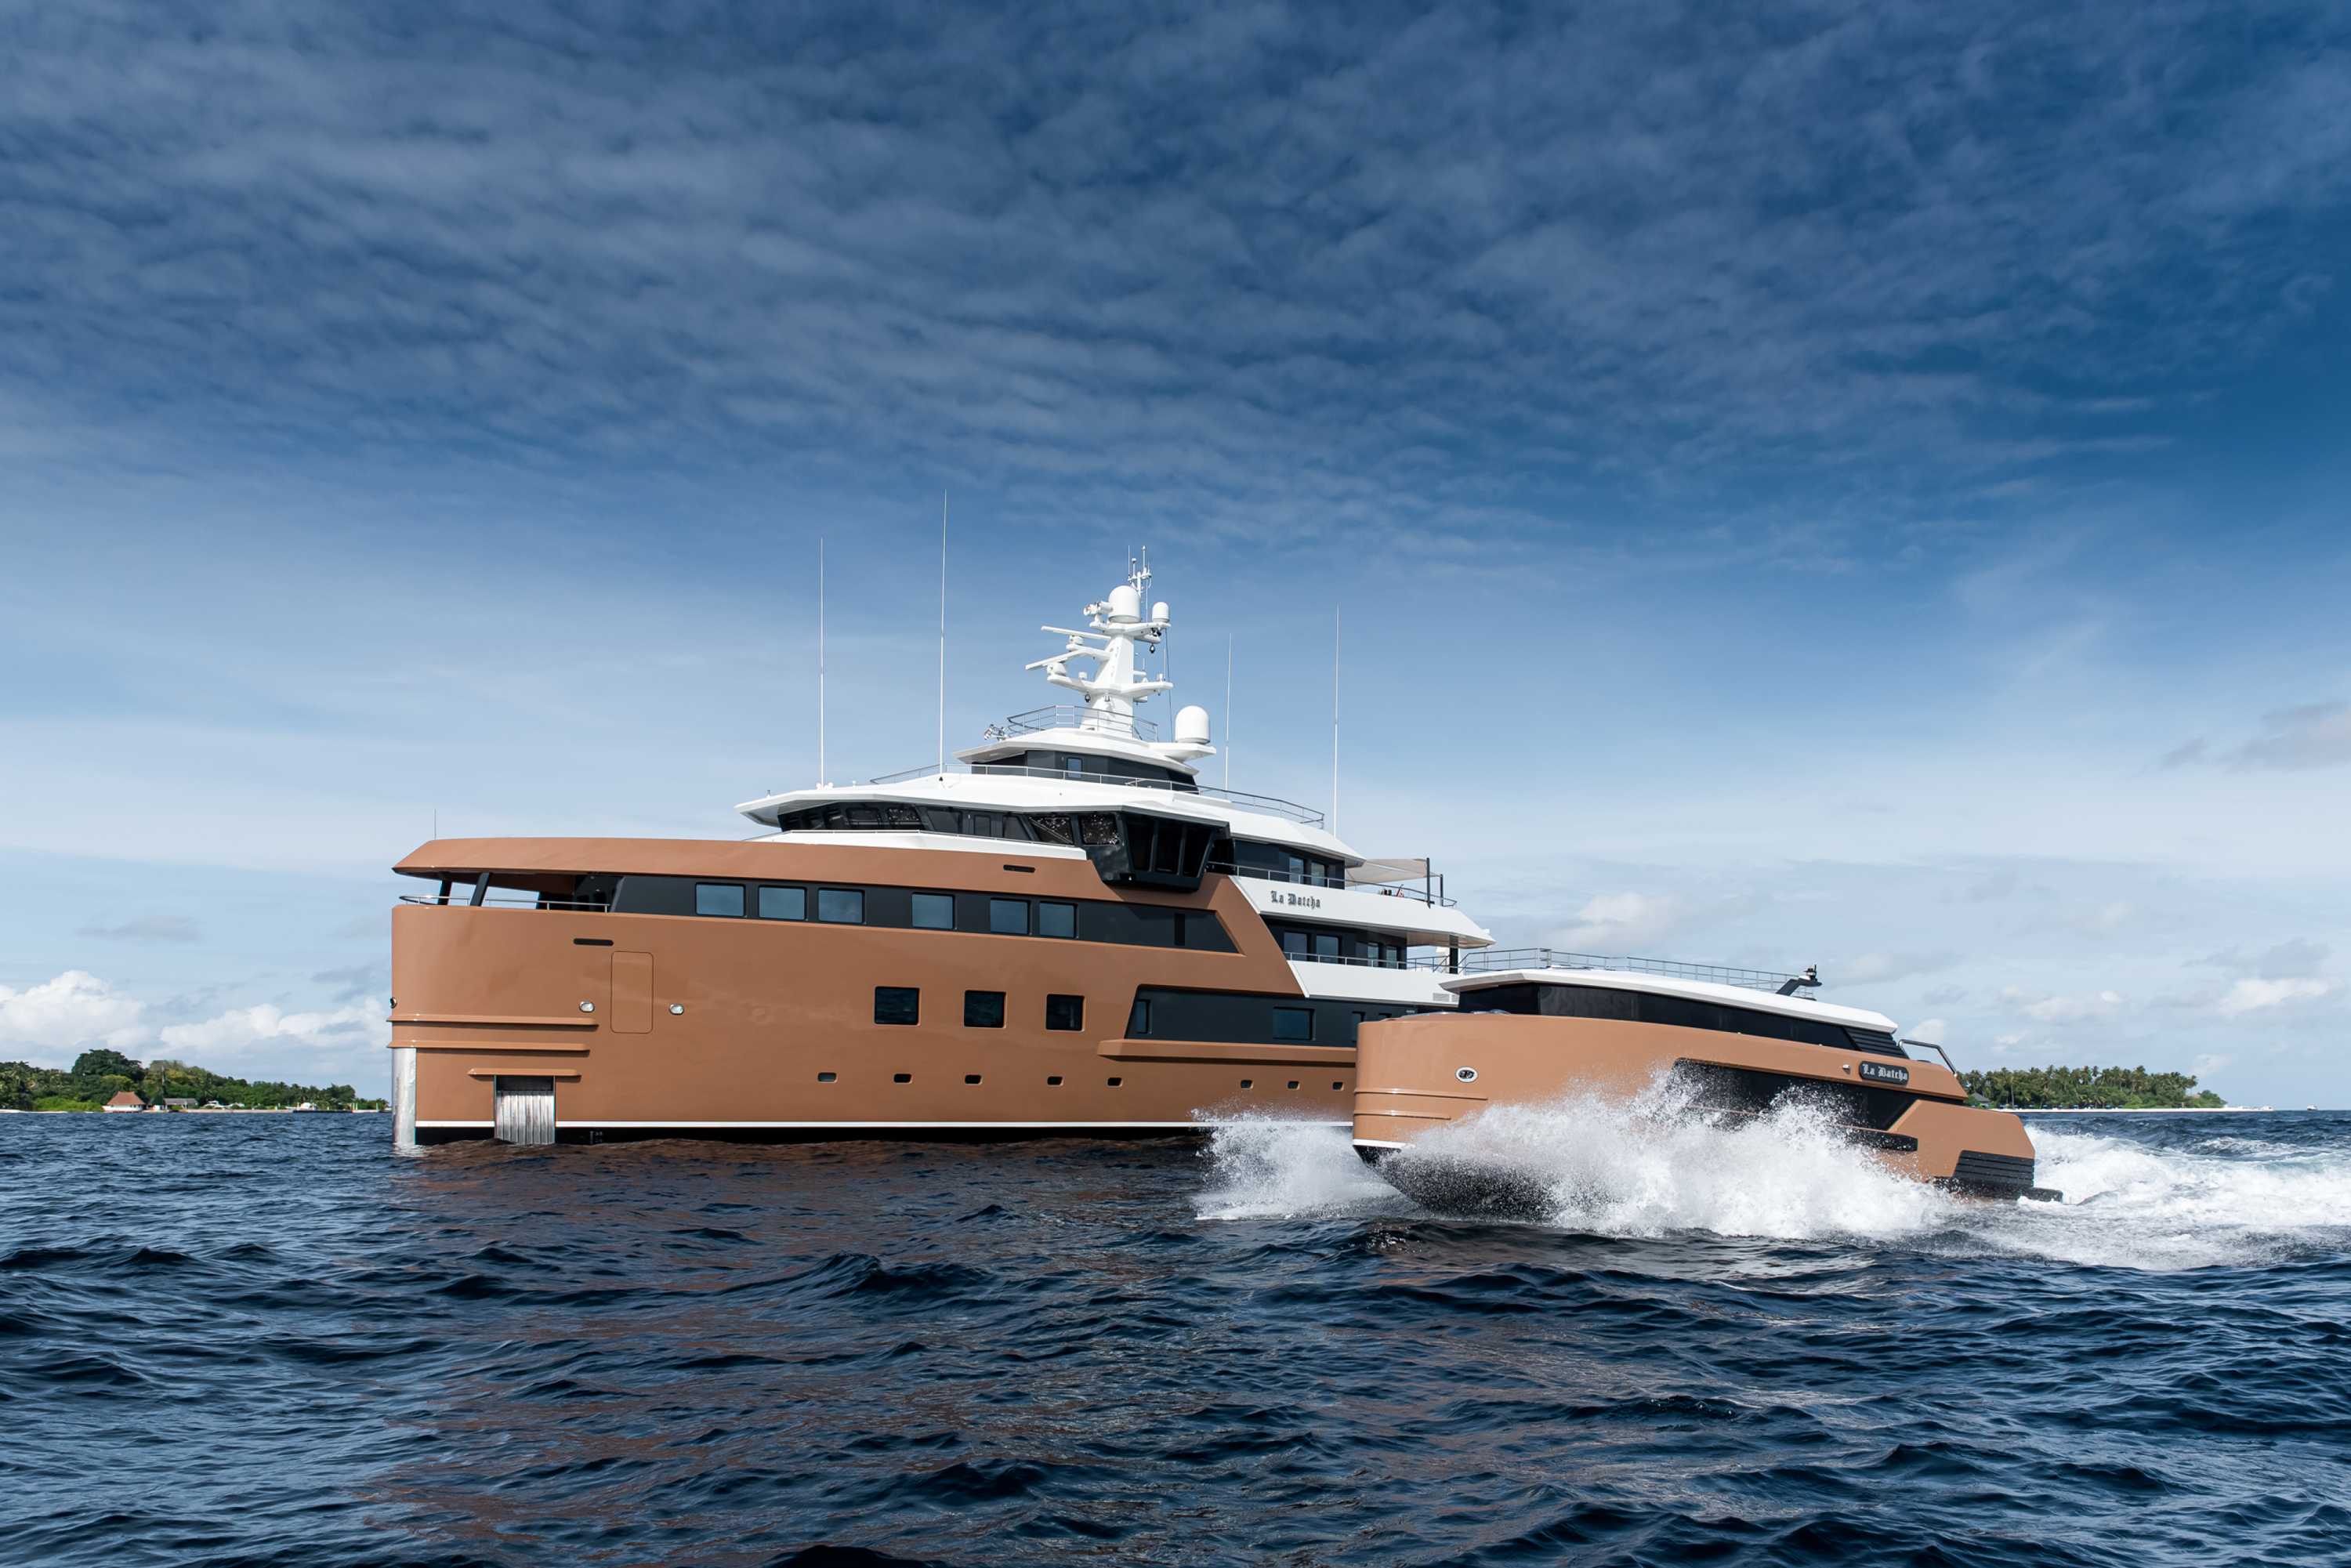 LA DATCHA receives special commendations by jury at the BOAT Design & Innovation Awards 2021